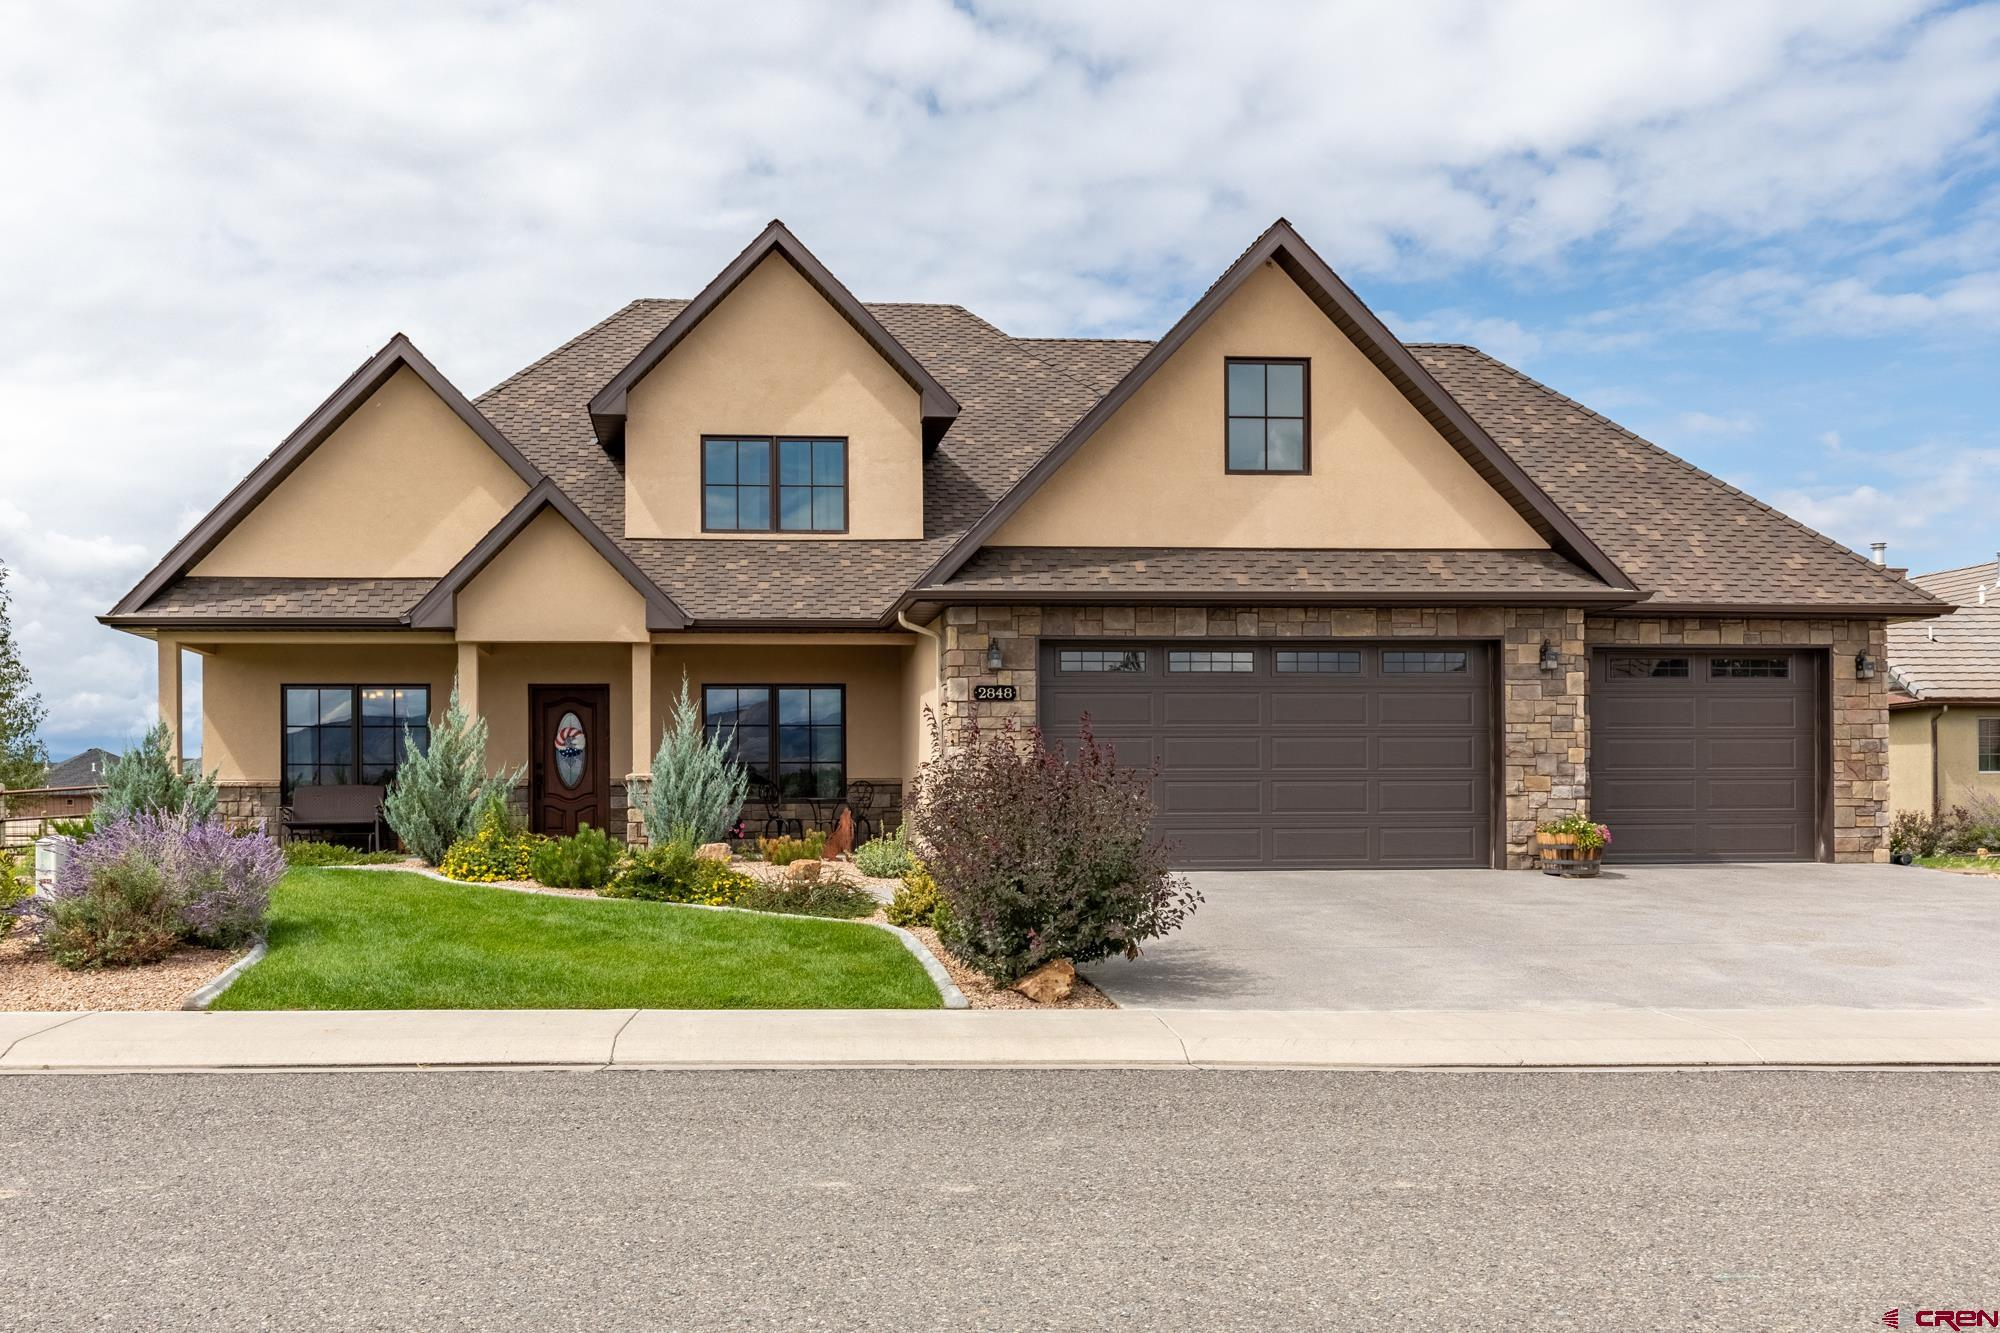 Impeccable Newer Construction Home on an Oversized Lot in the Bridges Golf Community! Make a wise purchase with this well-constructed 2017 build home. Attention to detail can be experienced in every part of the home. Wood-framed casement windows provide the added touch of quality and class you deserve. South-facing roof solar panels provide the home with enough electricity to eliminate cumbersome electric bills! The welcoming main living area adorns cathedral ceilings accented by a stone fireplace and tasteful engineered hardwood flooring, providing a warm and enjoyable atmosphere. Let the kitchen bring happiness to the chef in your family, featuring stainless steel appliances, accented by custom cherry cabinets and plush granite countertops. The office is separate from the bedrooms and comes equipped with lightning-fast fiber internet for all of your work/school-from-home needs. The cozy back patio and sunroom allow a comfortable space for gathering with friends, family, and pets, without the nuisance of wind and bugs. Can't get enough of the outside? The sprawling and fully fenced backyard gives you and your loved ones freedom to roam! And the decadent hot tub with privacy pergola will give your body the rejuvenation it needs after exploring the nearby mountains. Make this Impeccable Newer Construction Home Your New You; Take a Tour Today!